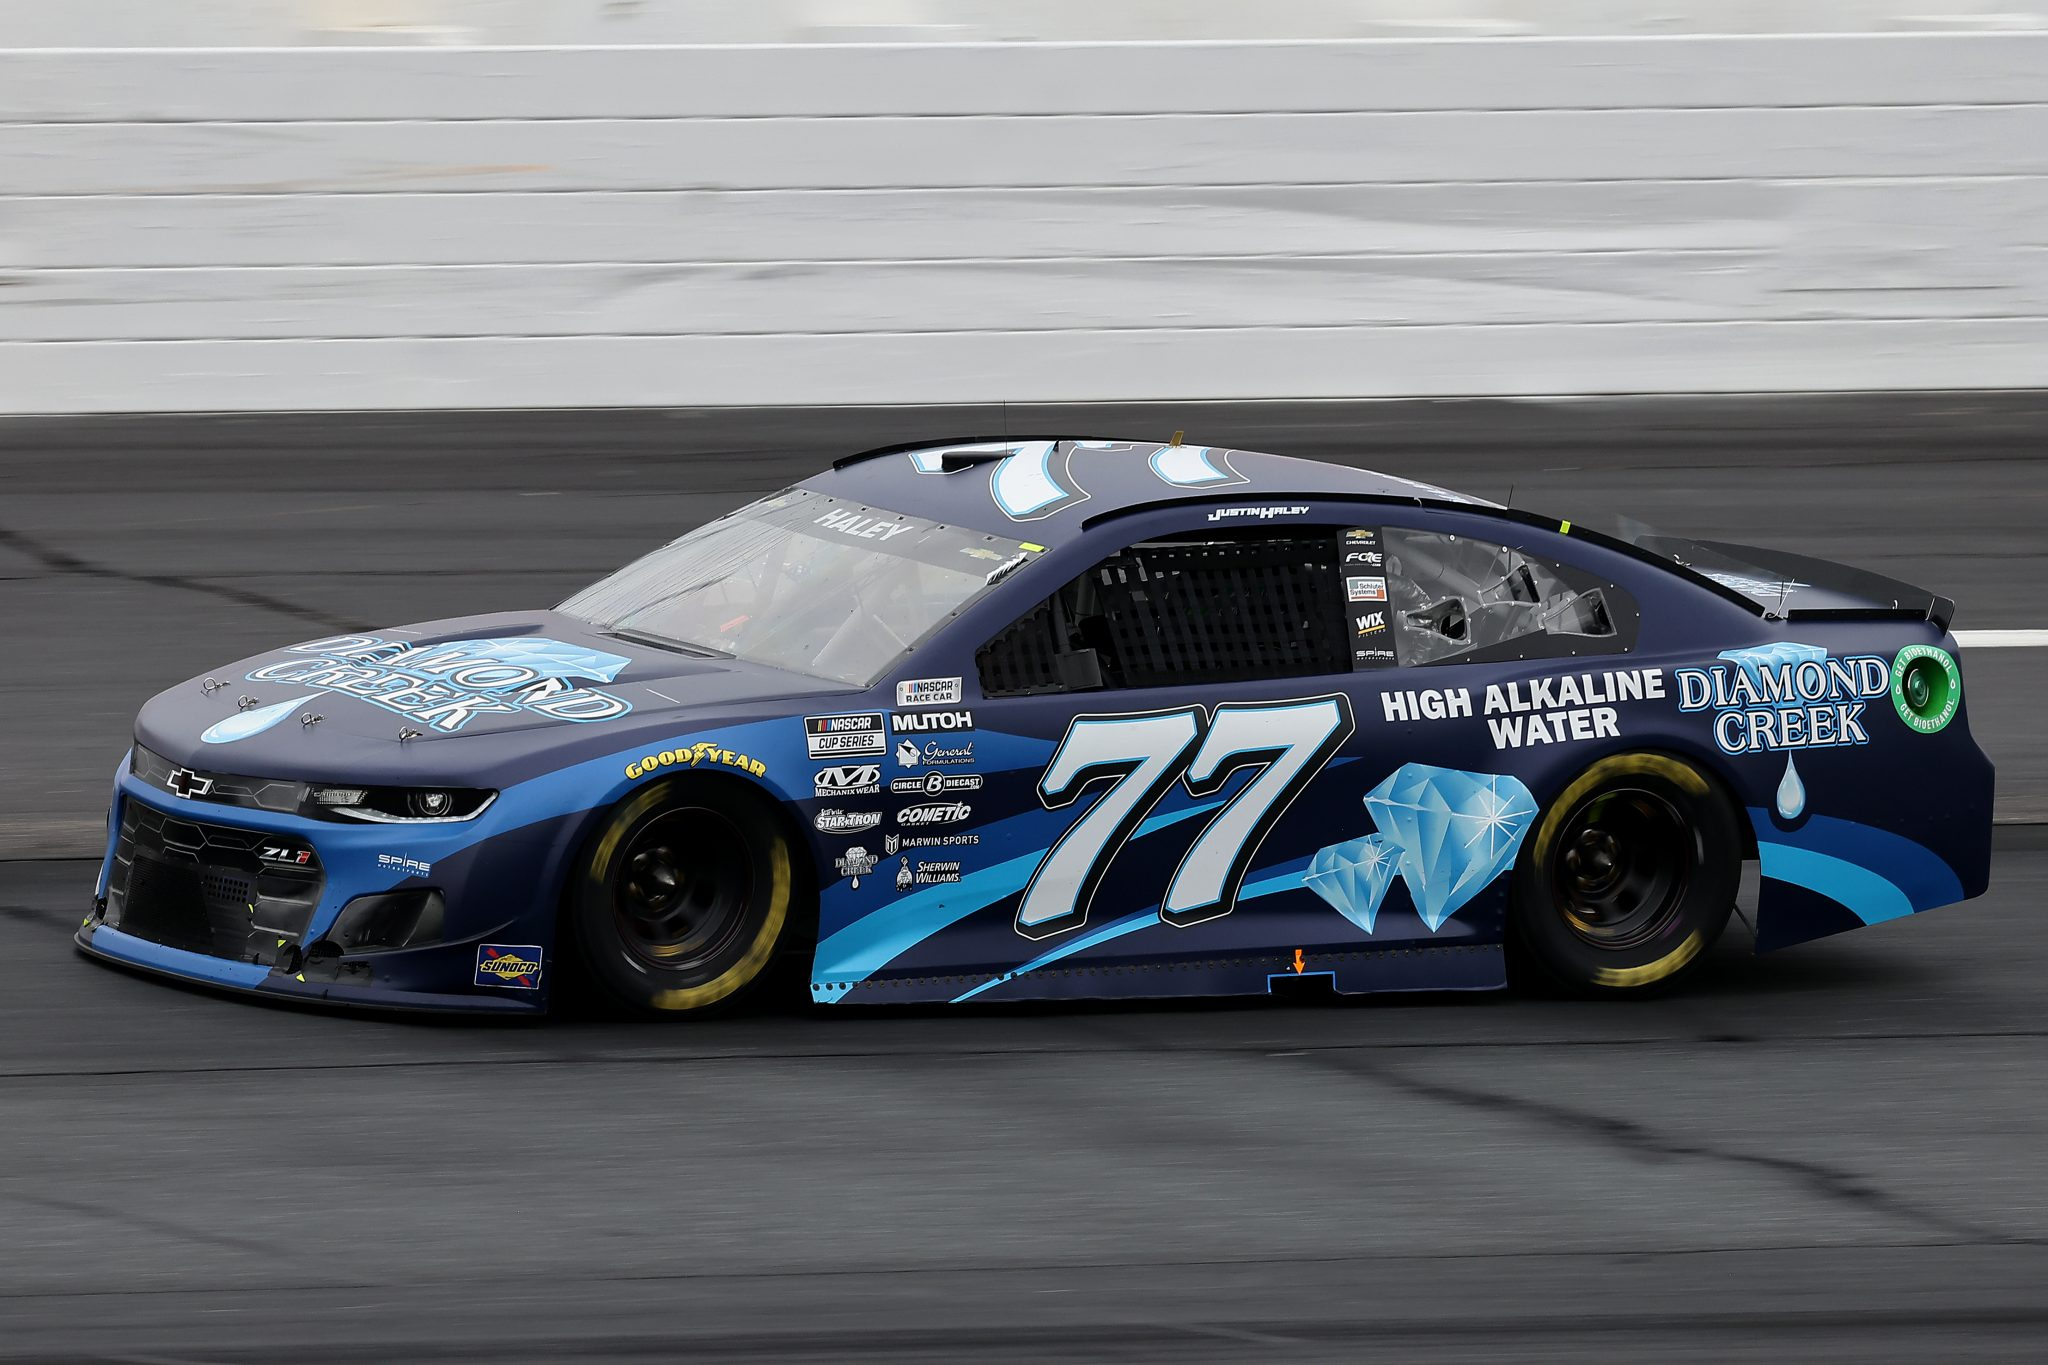 LOUDON, NEW HAMPSHIRE - JULY 18: Justin Haley, driver of the #77 Diamond Creek Water Chevrolet, drives during the NASCAR Cup Series Foxwoods Resort Casino 301 at New Hampshire Motor Speedway on July 18, 2021 in Loudon, New Hampshire. (Photo by James Gilbert/Getty Images) | Getty Images